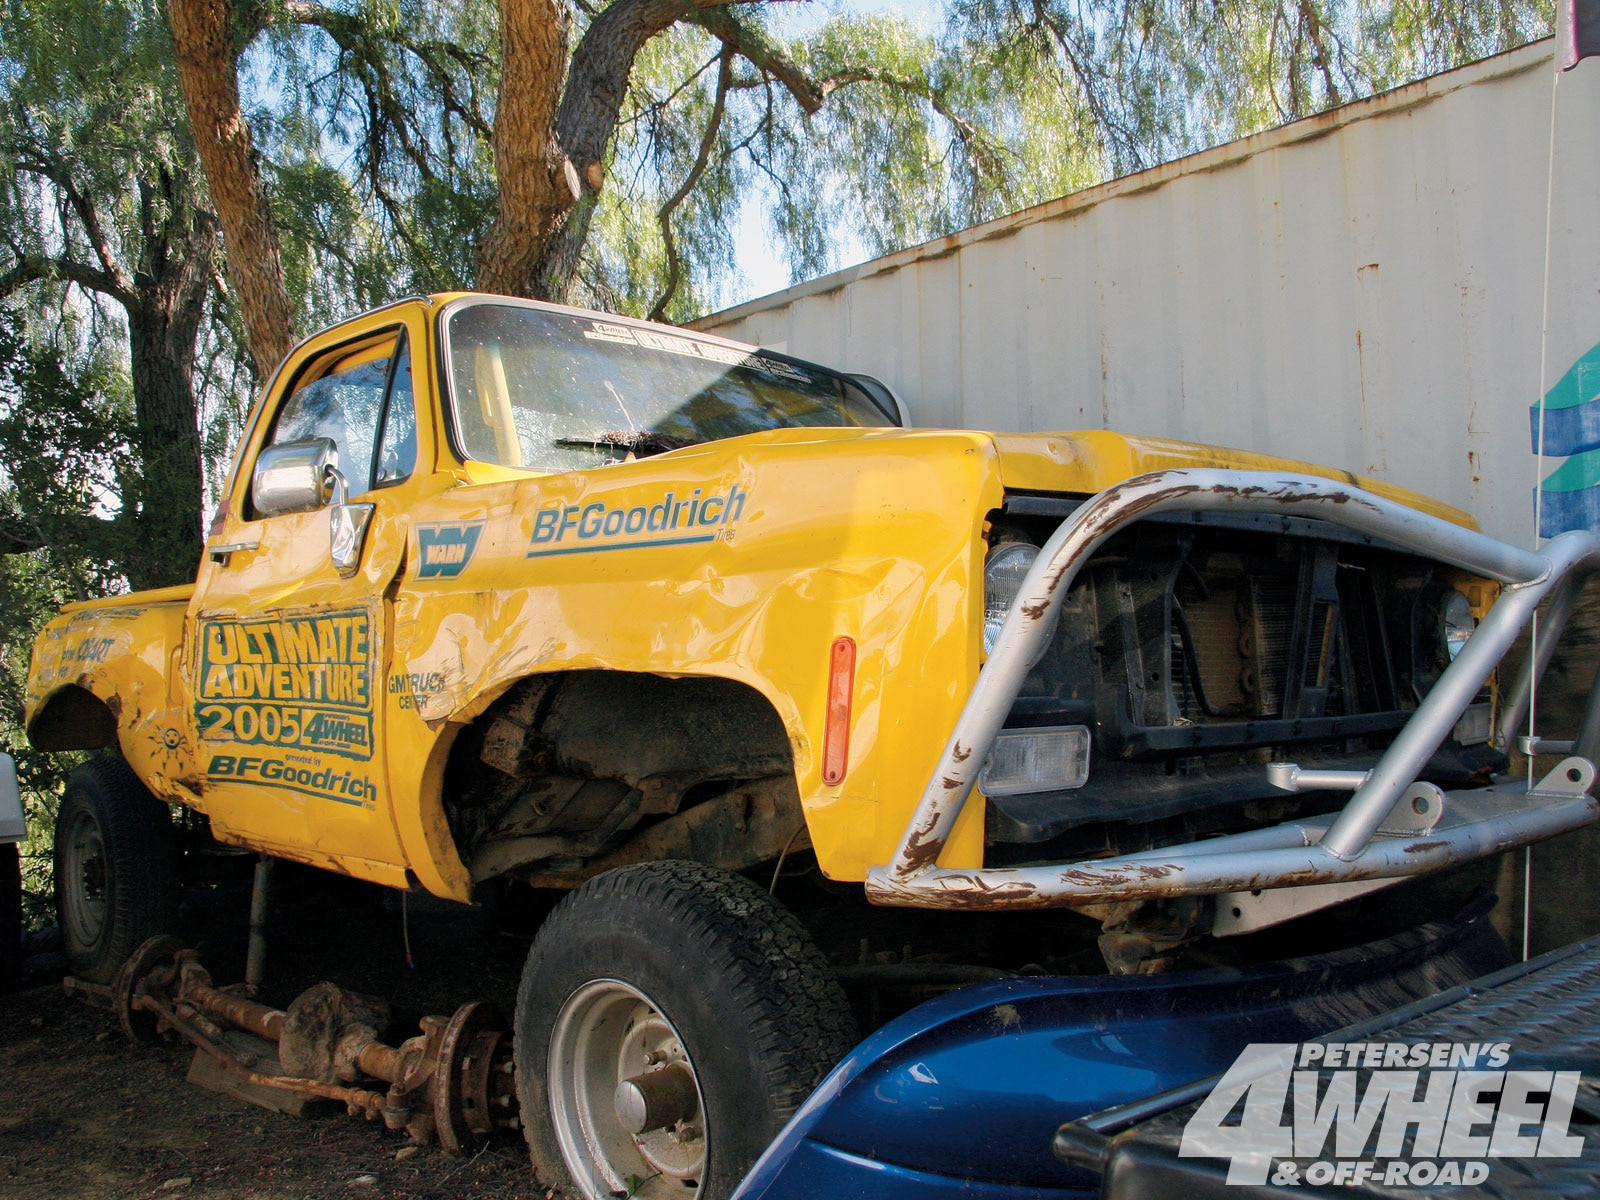 Ultimate Adventure Trucks Where Are They Now? - 4-Wheel & Off-Road